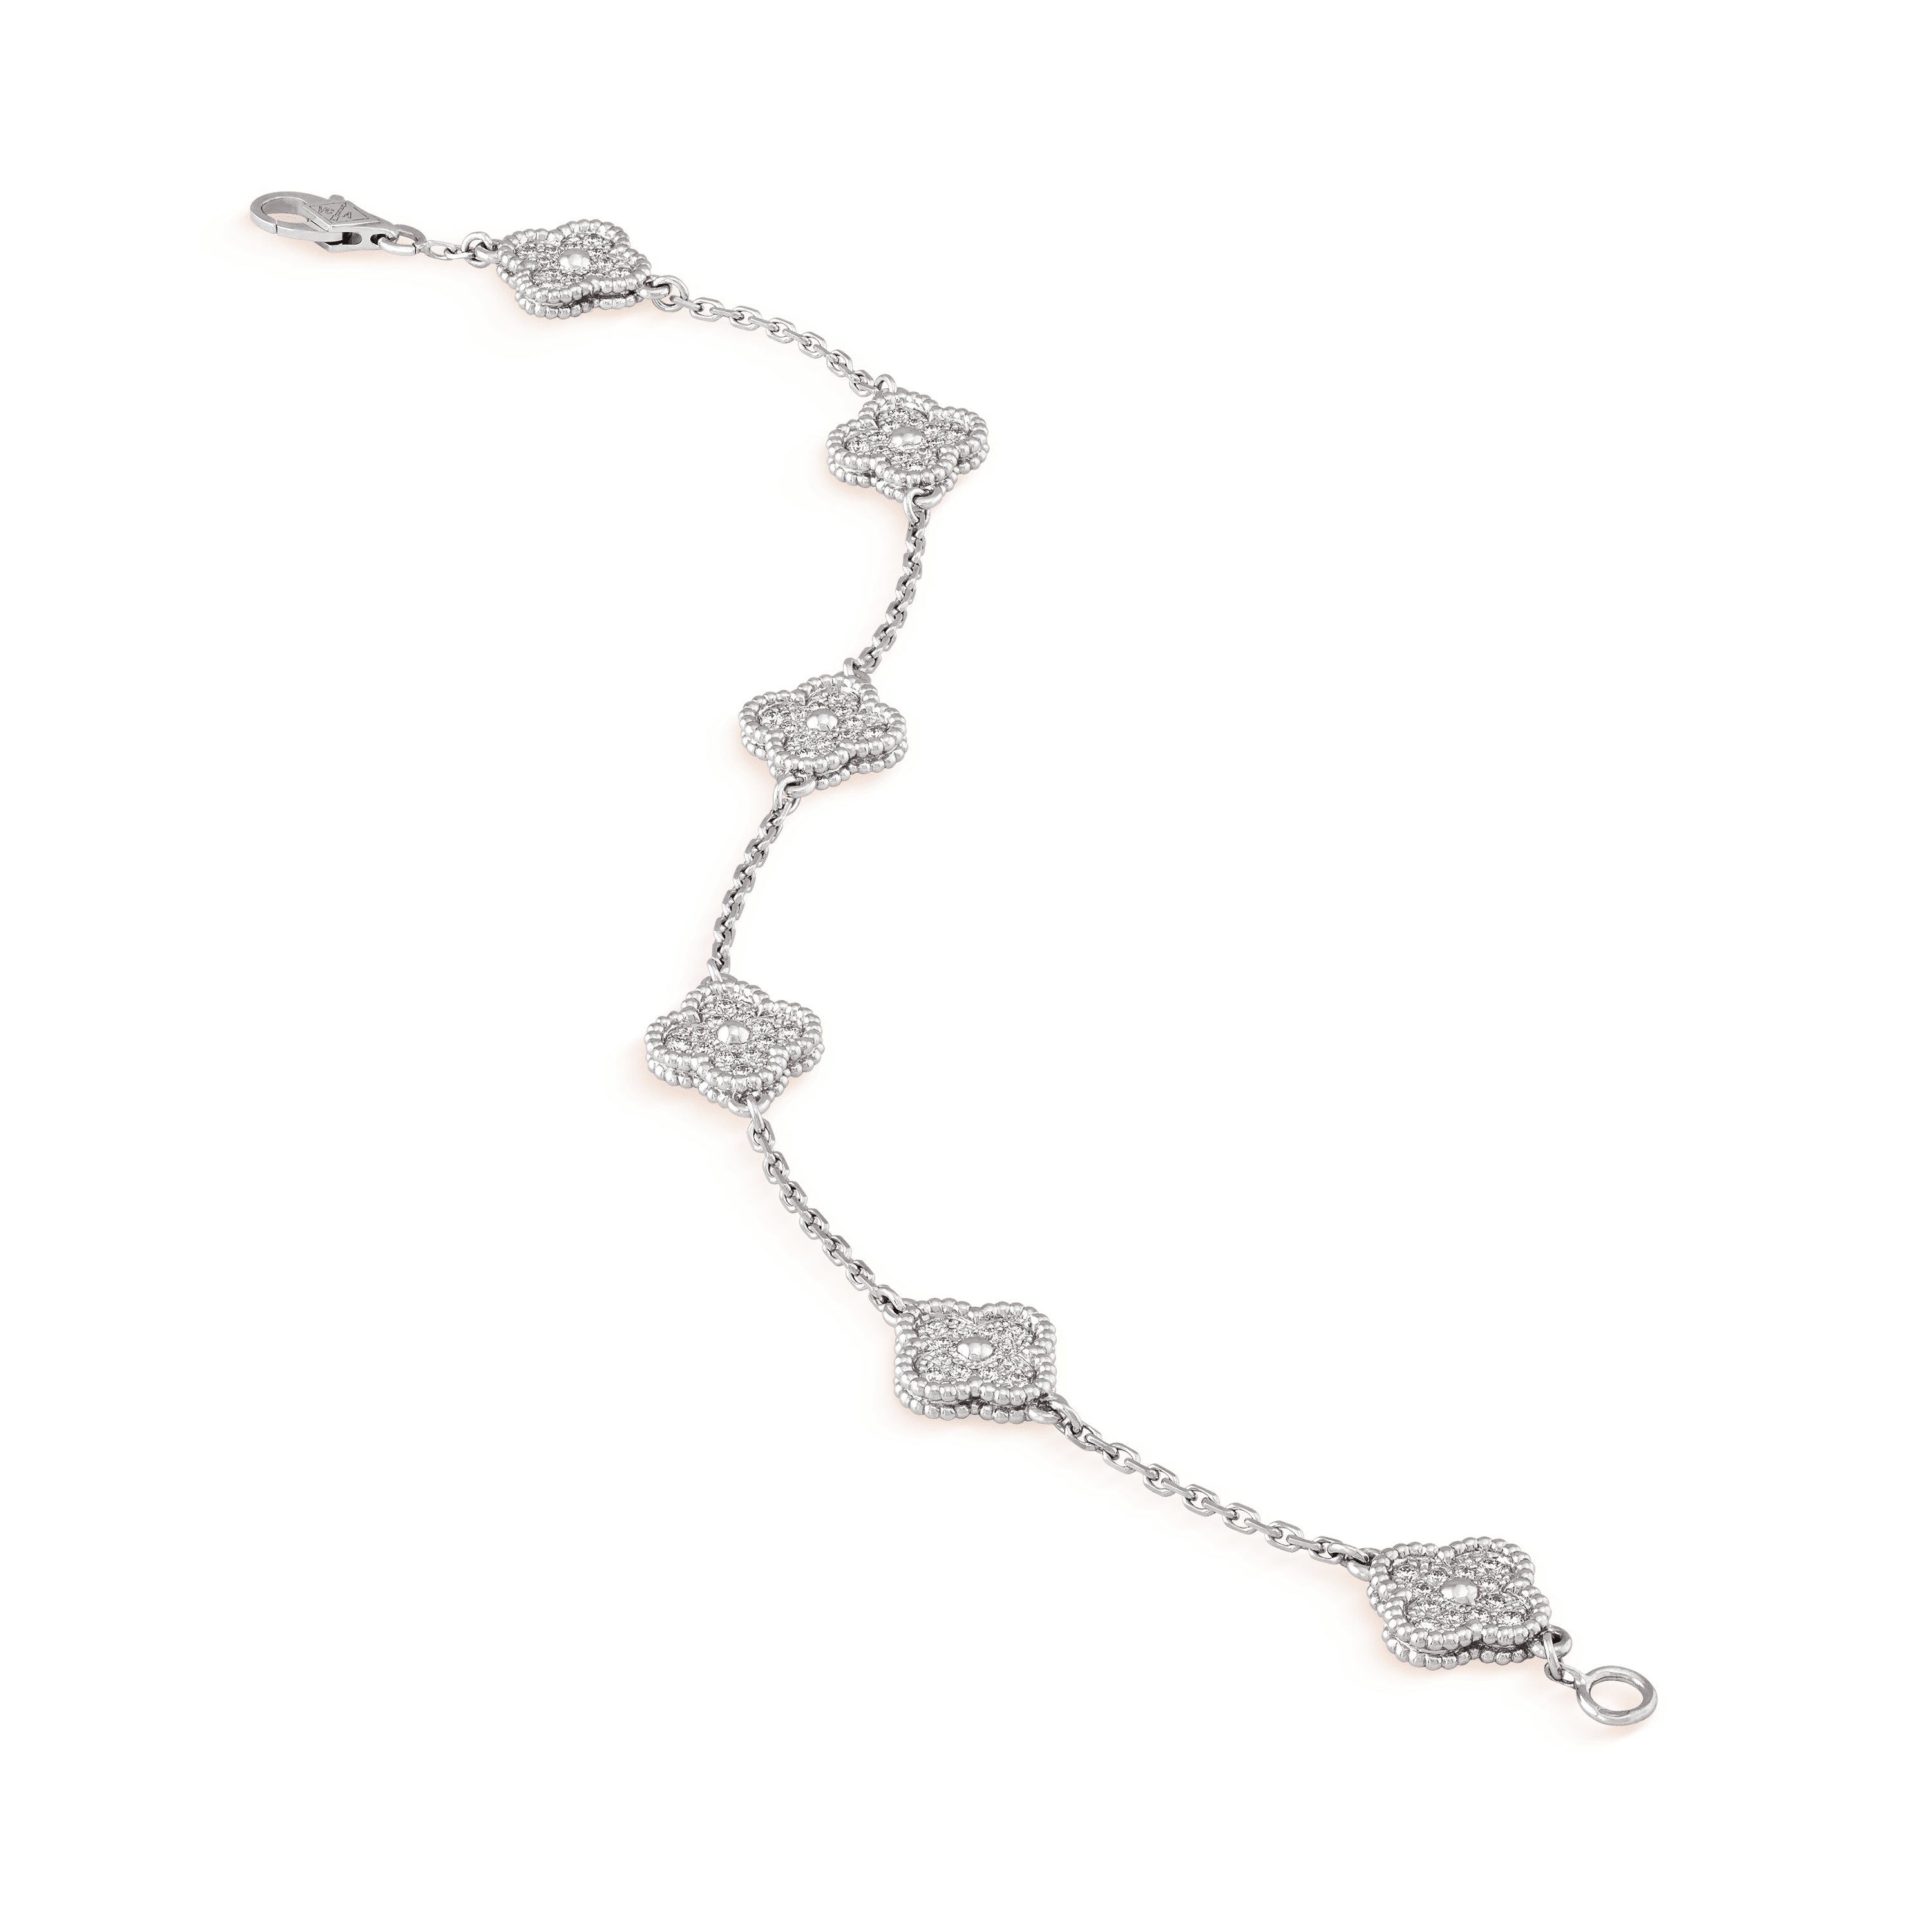 Sweet Alhambra bracelet, 6 motifs, - Close-Up View - VCARO85700 - Van Cleef & Arpels